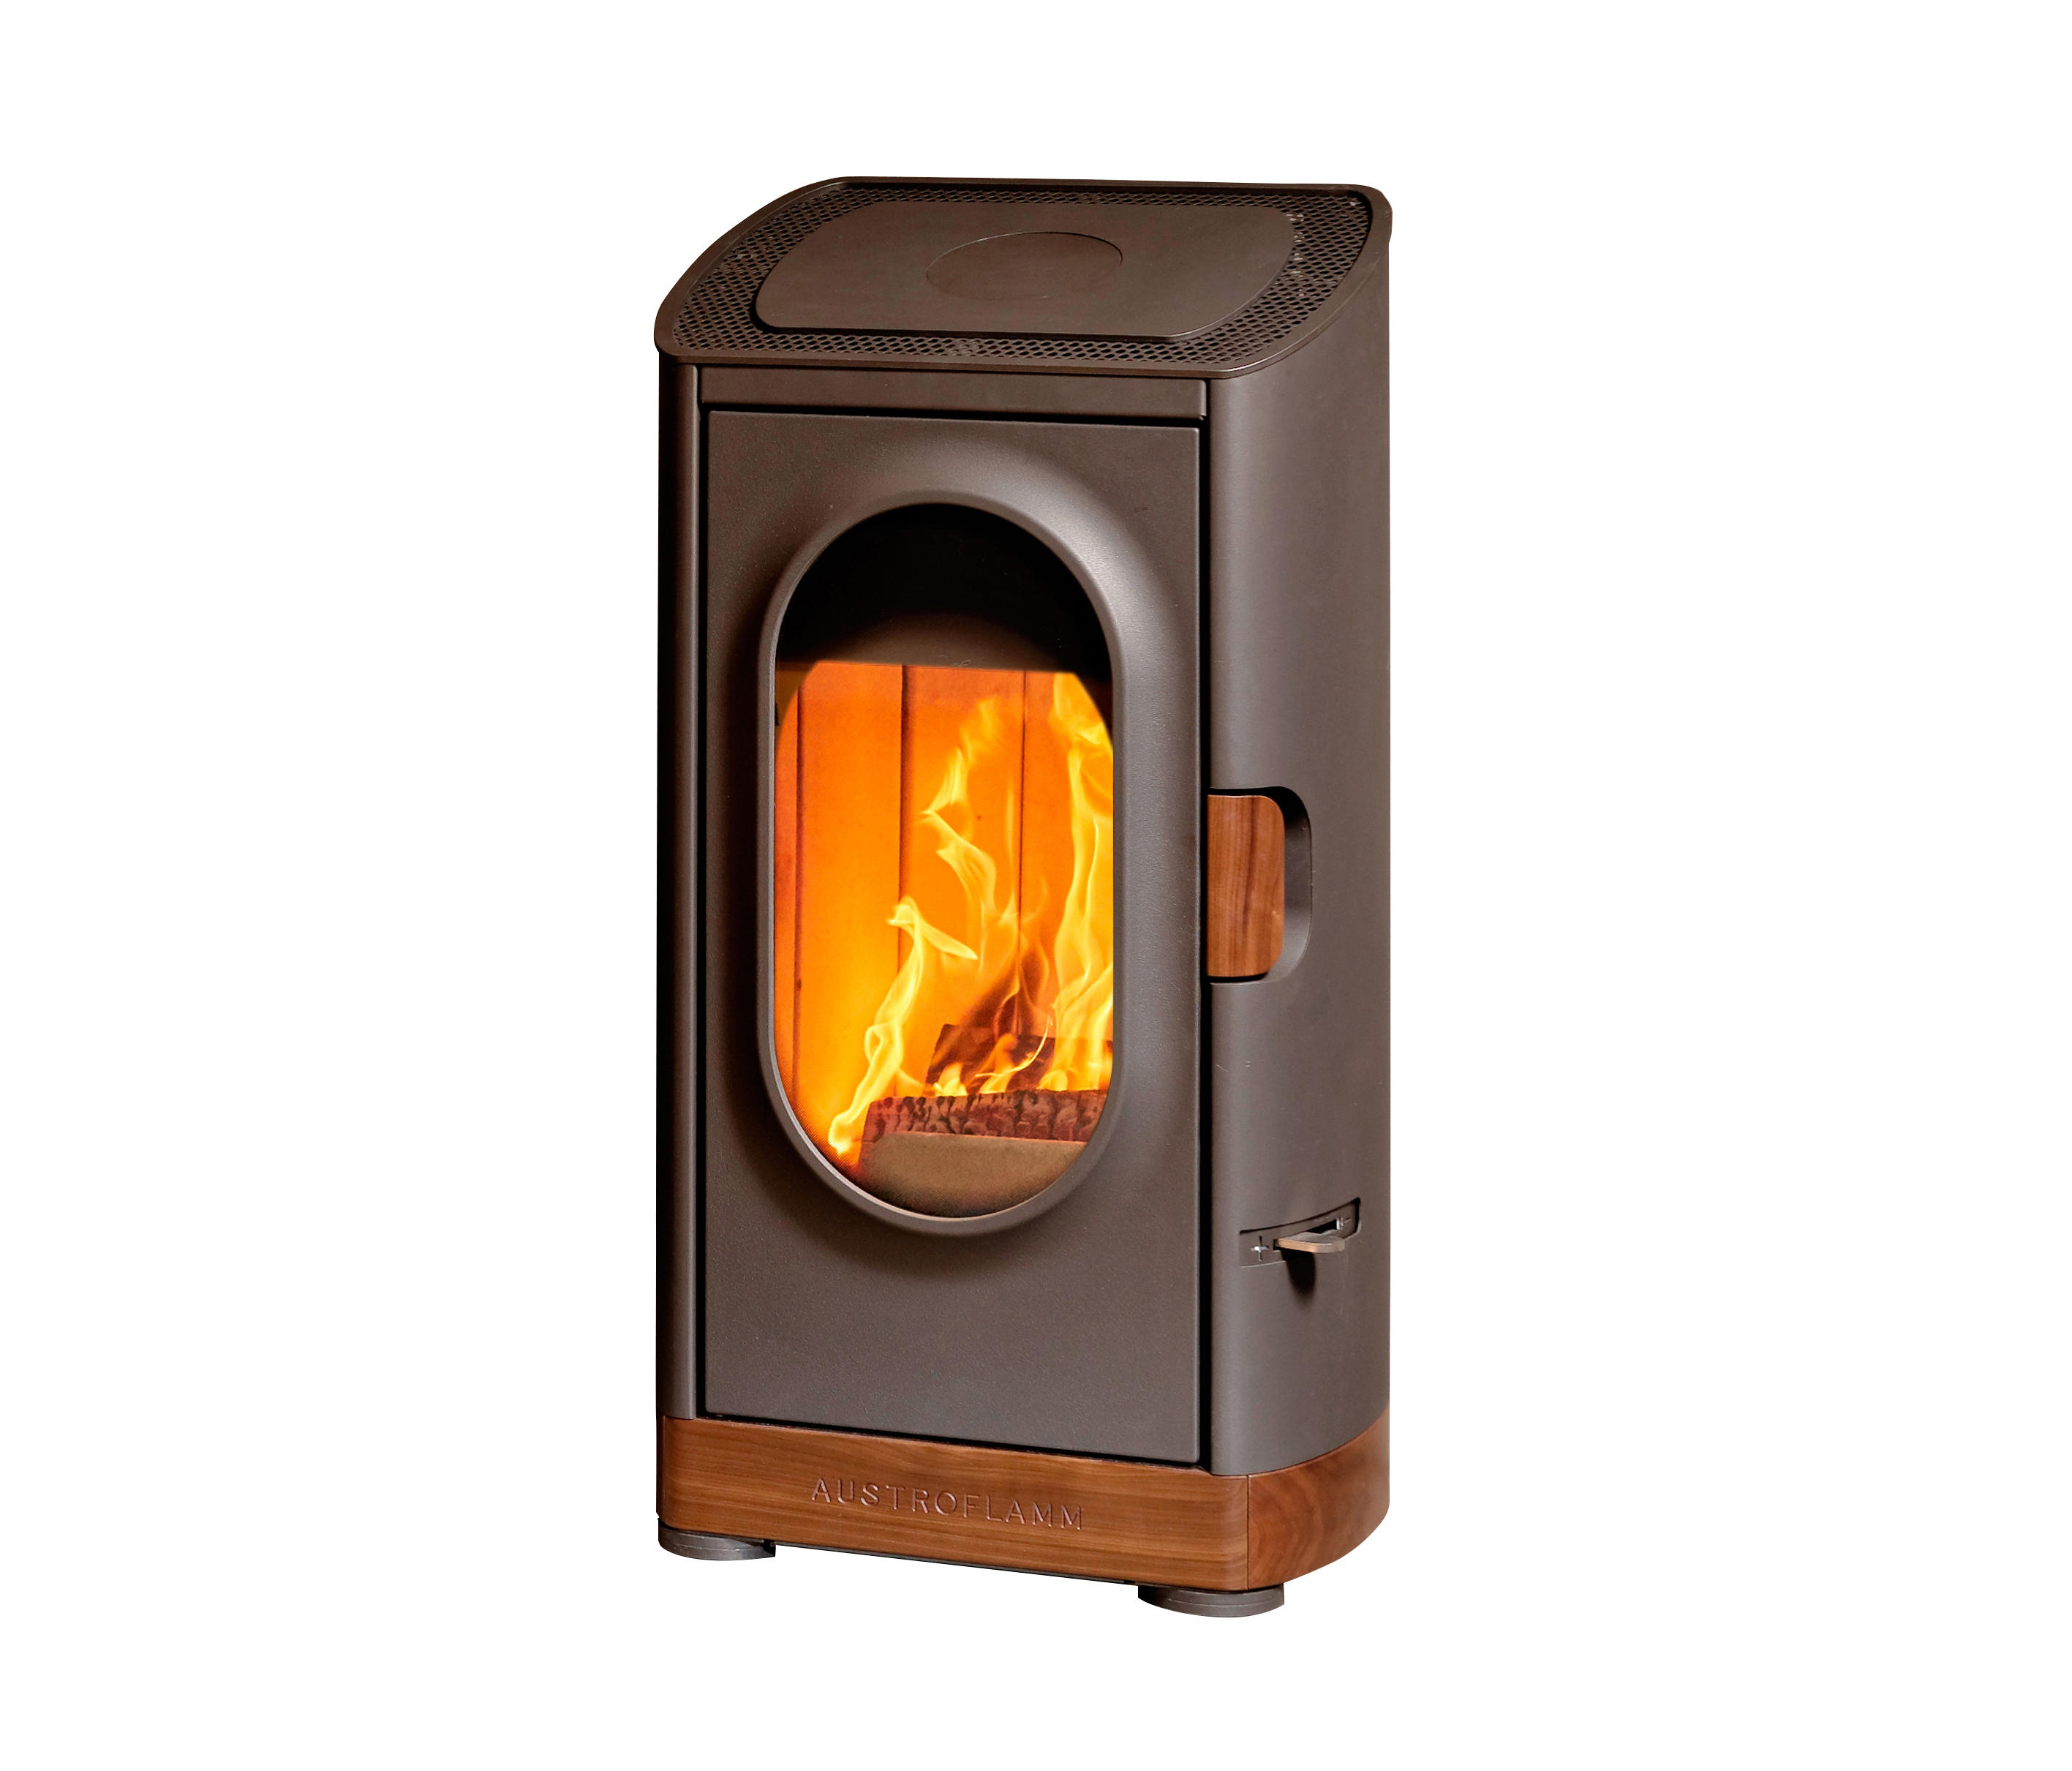 Kaminofen Skantherm Milano Stein Closed Fireplaces Wood Fireplaces High Quality Designer Closed